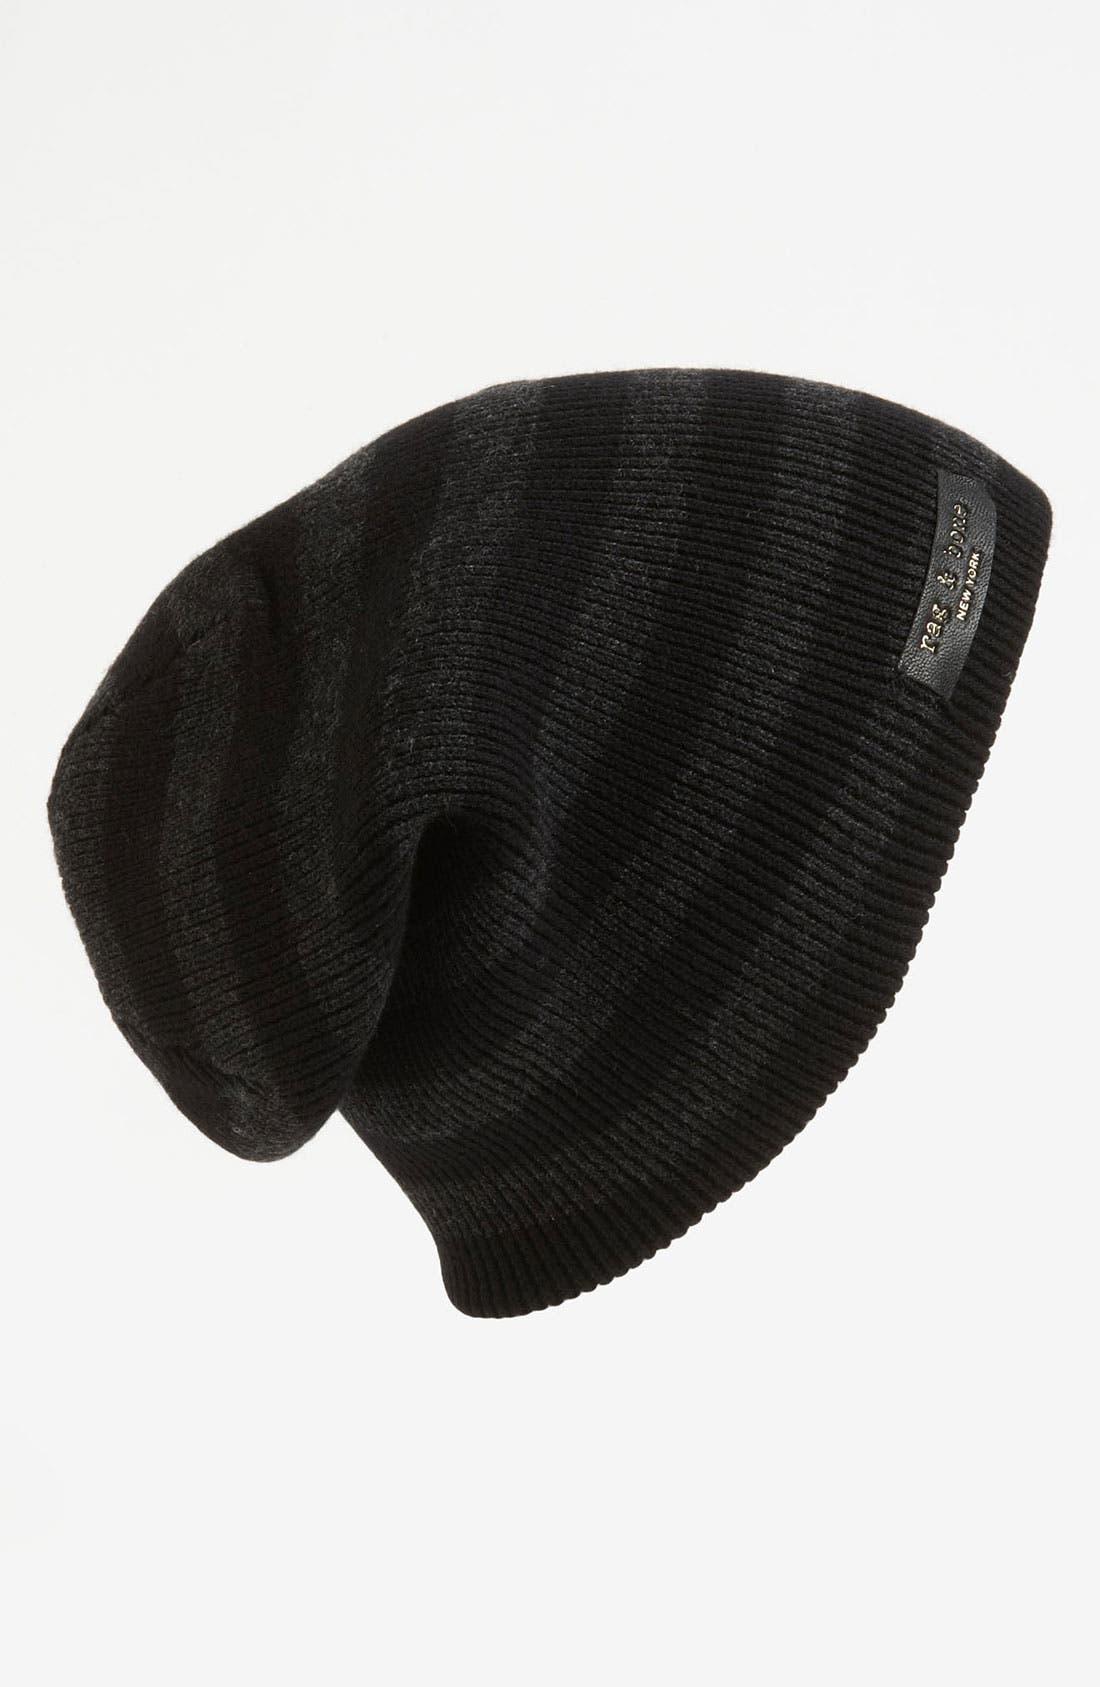 Alternate Image 1 Selected - rag & bone 'Bamburg' Reversible Beanie